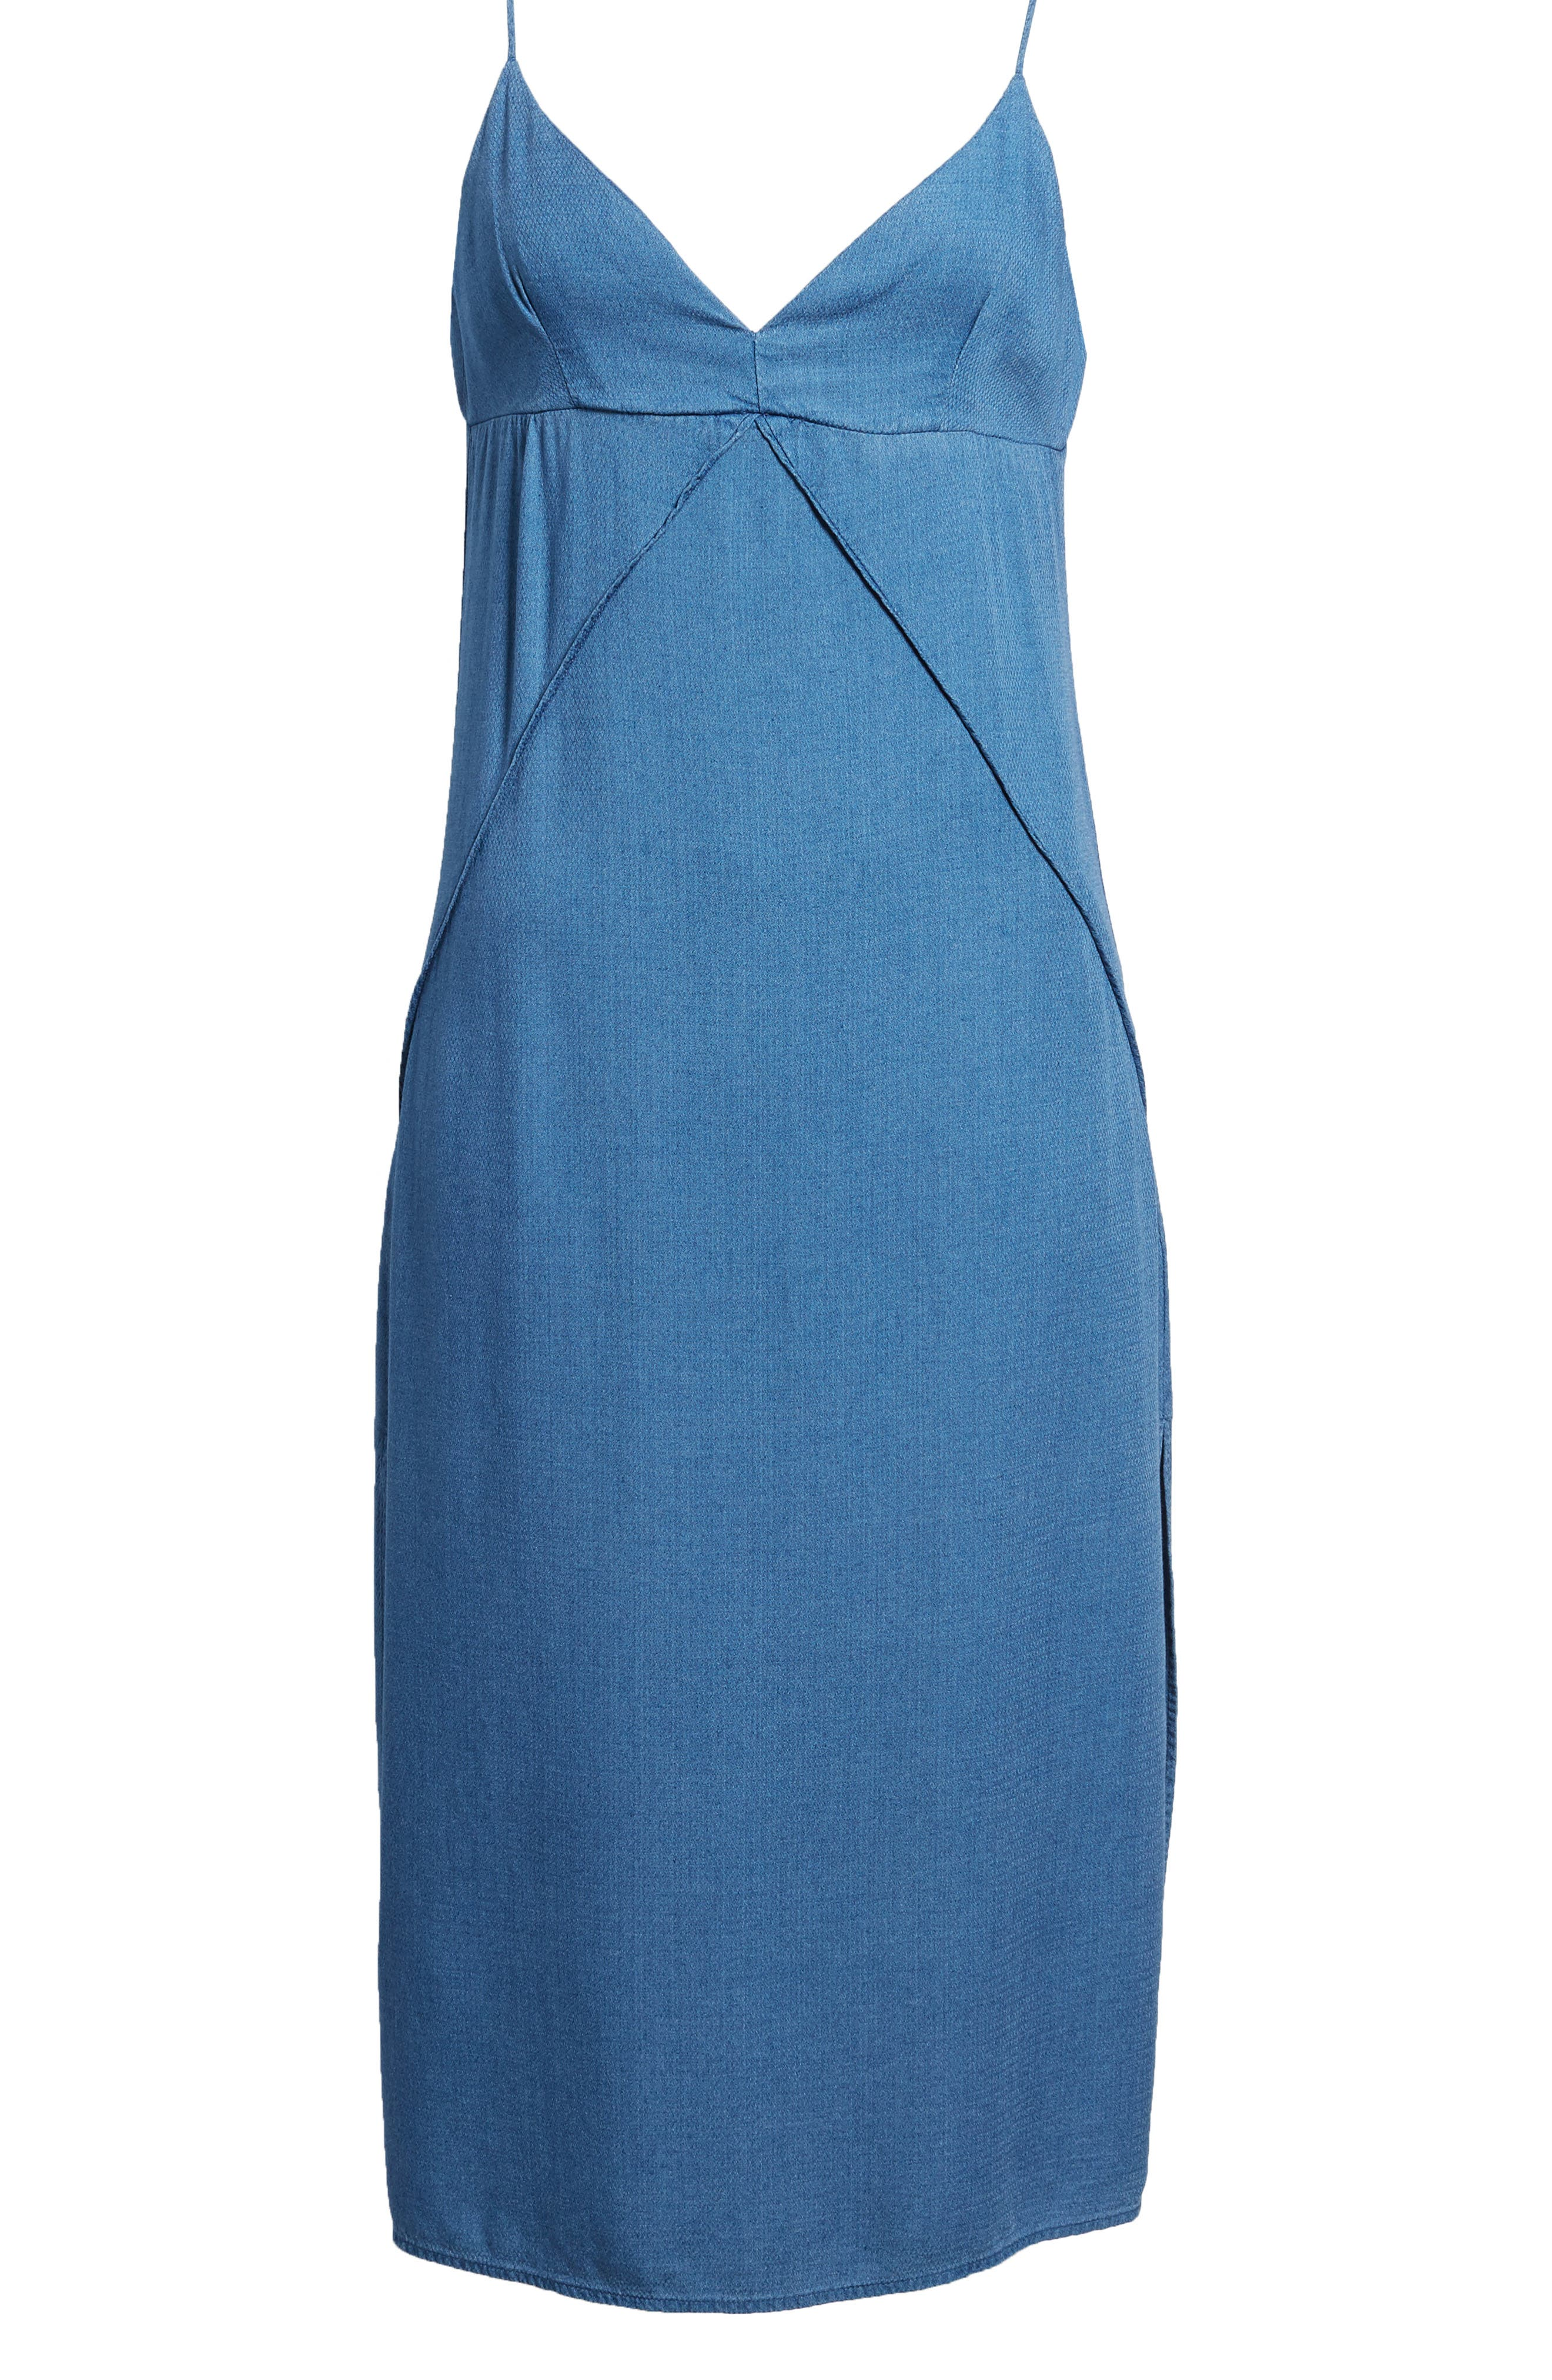 Chambray Camisole Dress,                             Alternate thumbnail 6, color,                             466